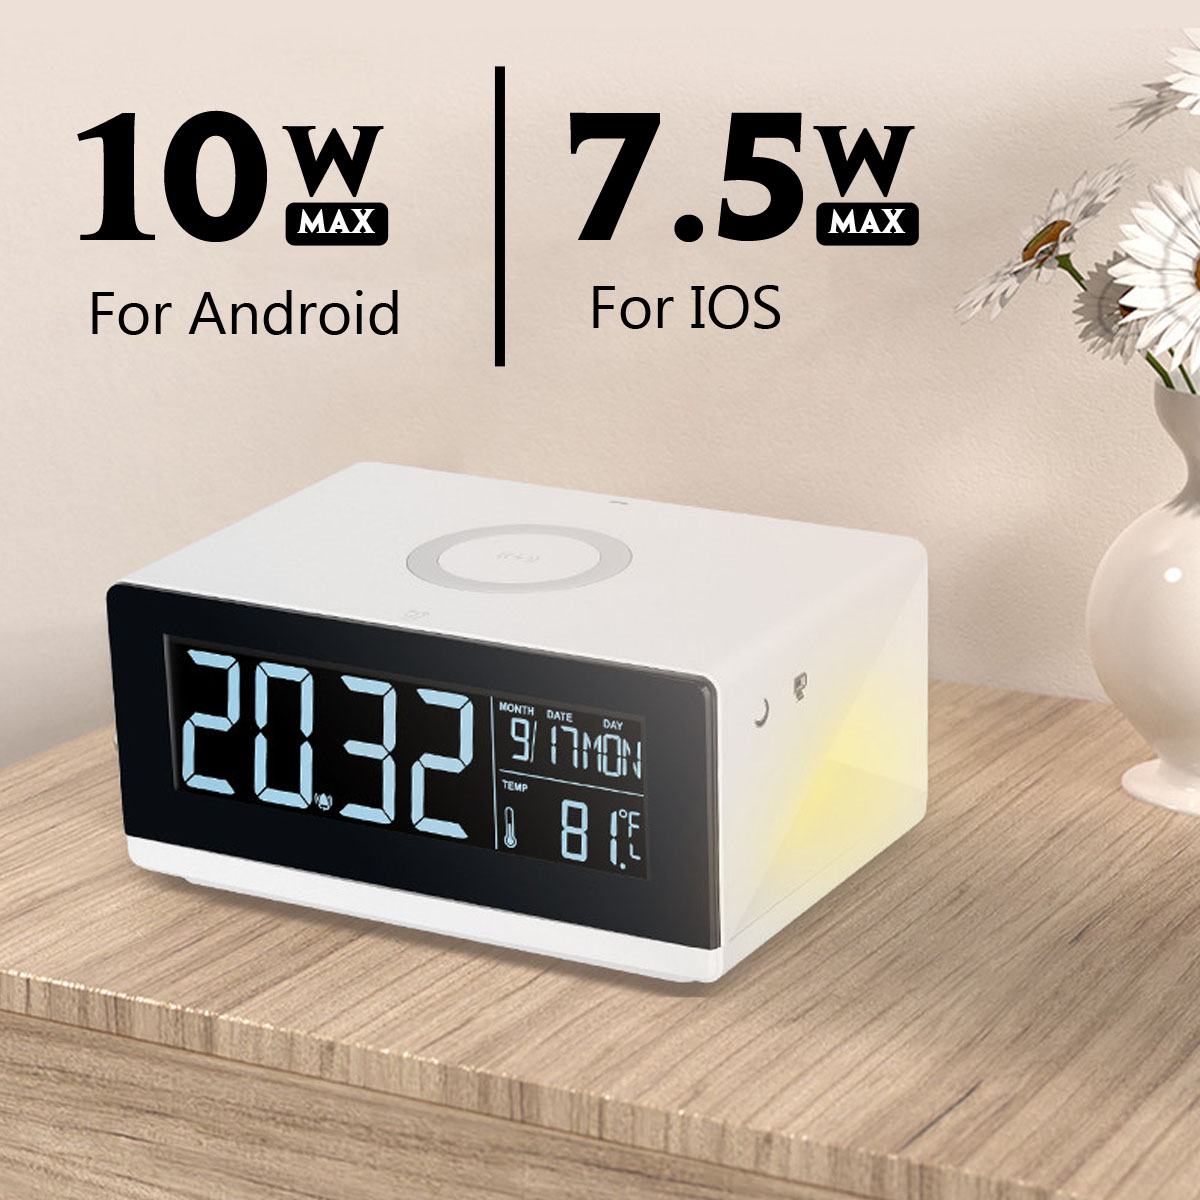 Modern Digital Electric LED Alarm Clock with Wireless Charger Desktop Thermometer HD Mirror Clock with Time MemoryModern Digital Electric LED Alarm Clock with Wireless Charger Desktop Thermometer HD Mirror Clock with Time Memory